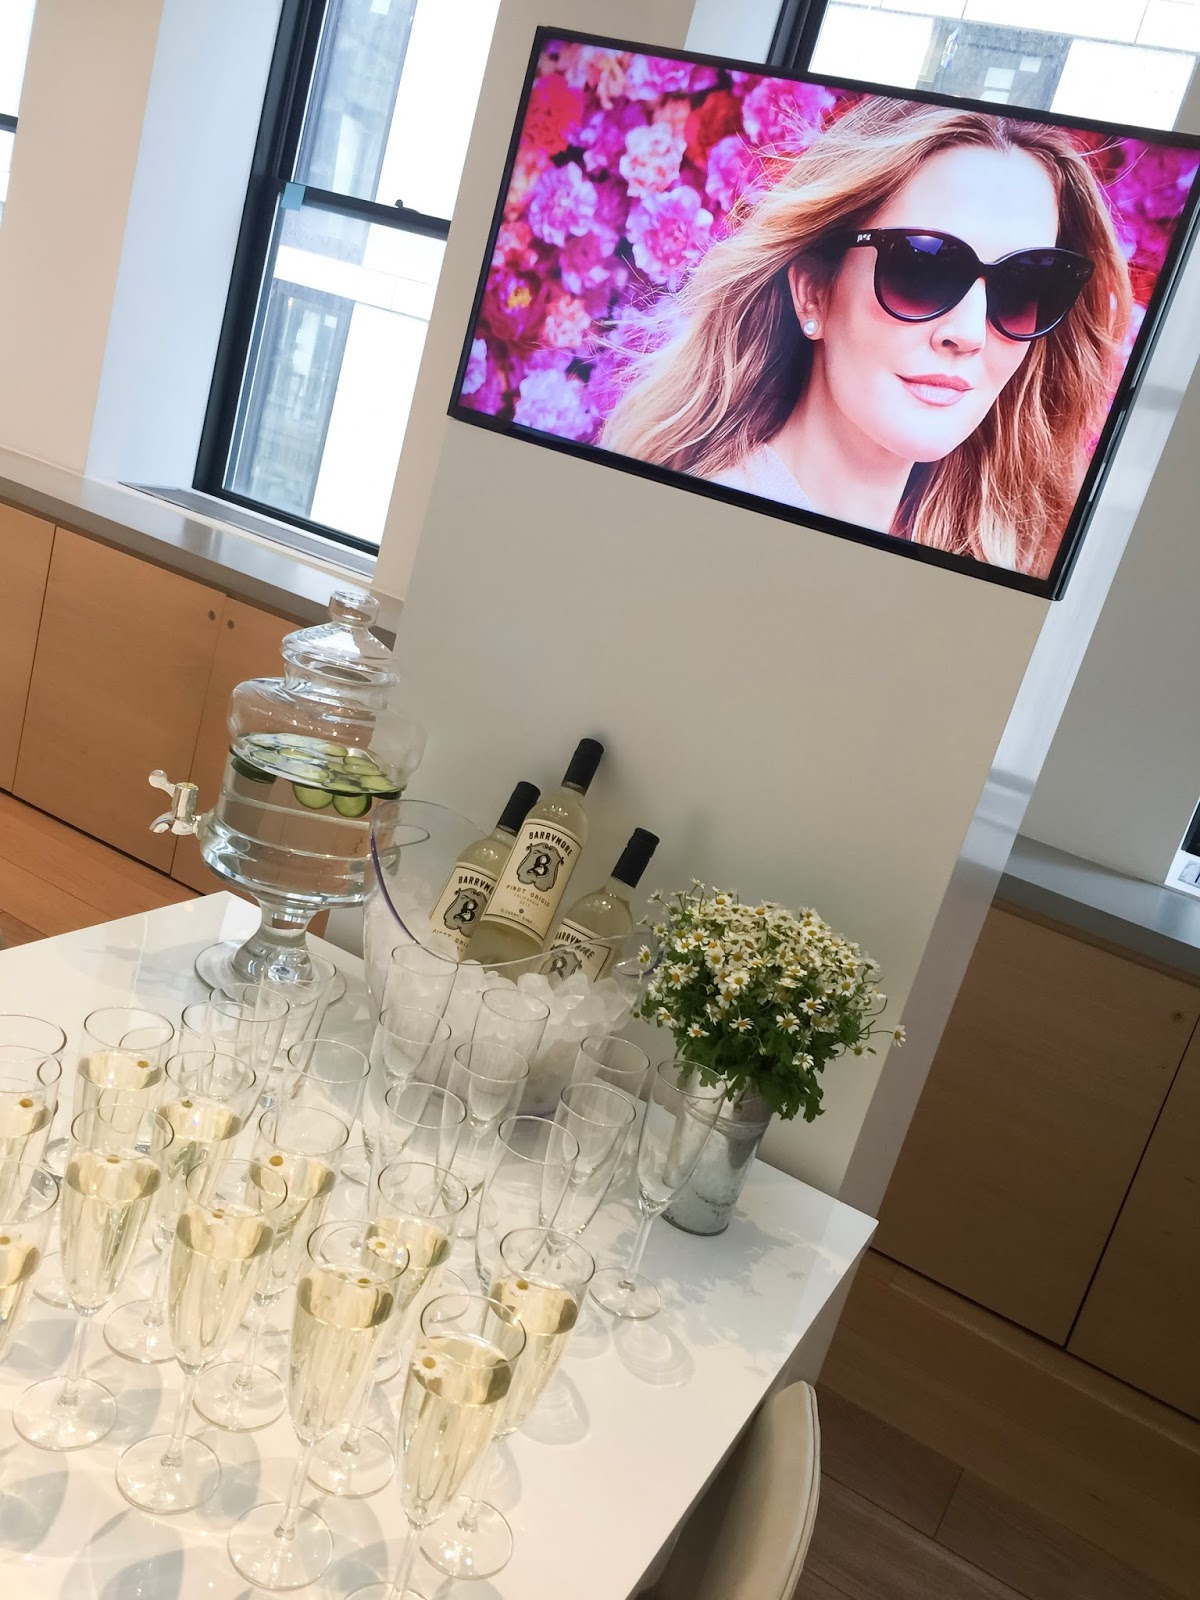 Drew Barrymore's Flower Eyewear, flowers, new york city events, blogger events, eyewear, glasses, sunglasses, nyc blogger events, Drew Barrymore